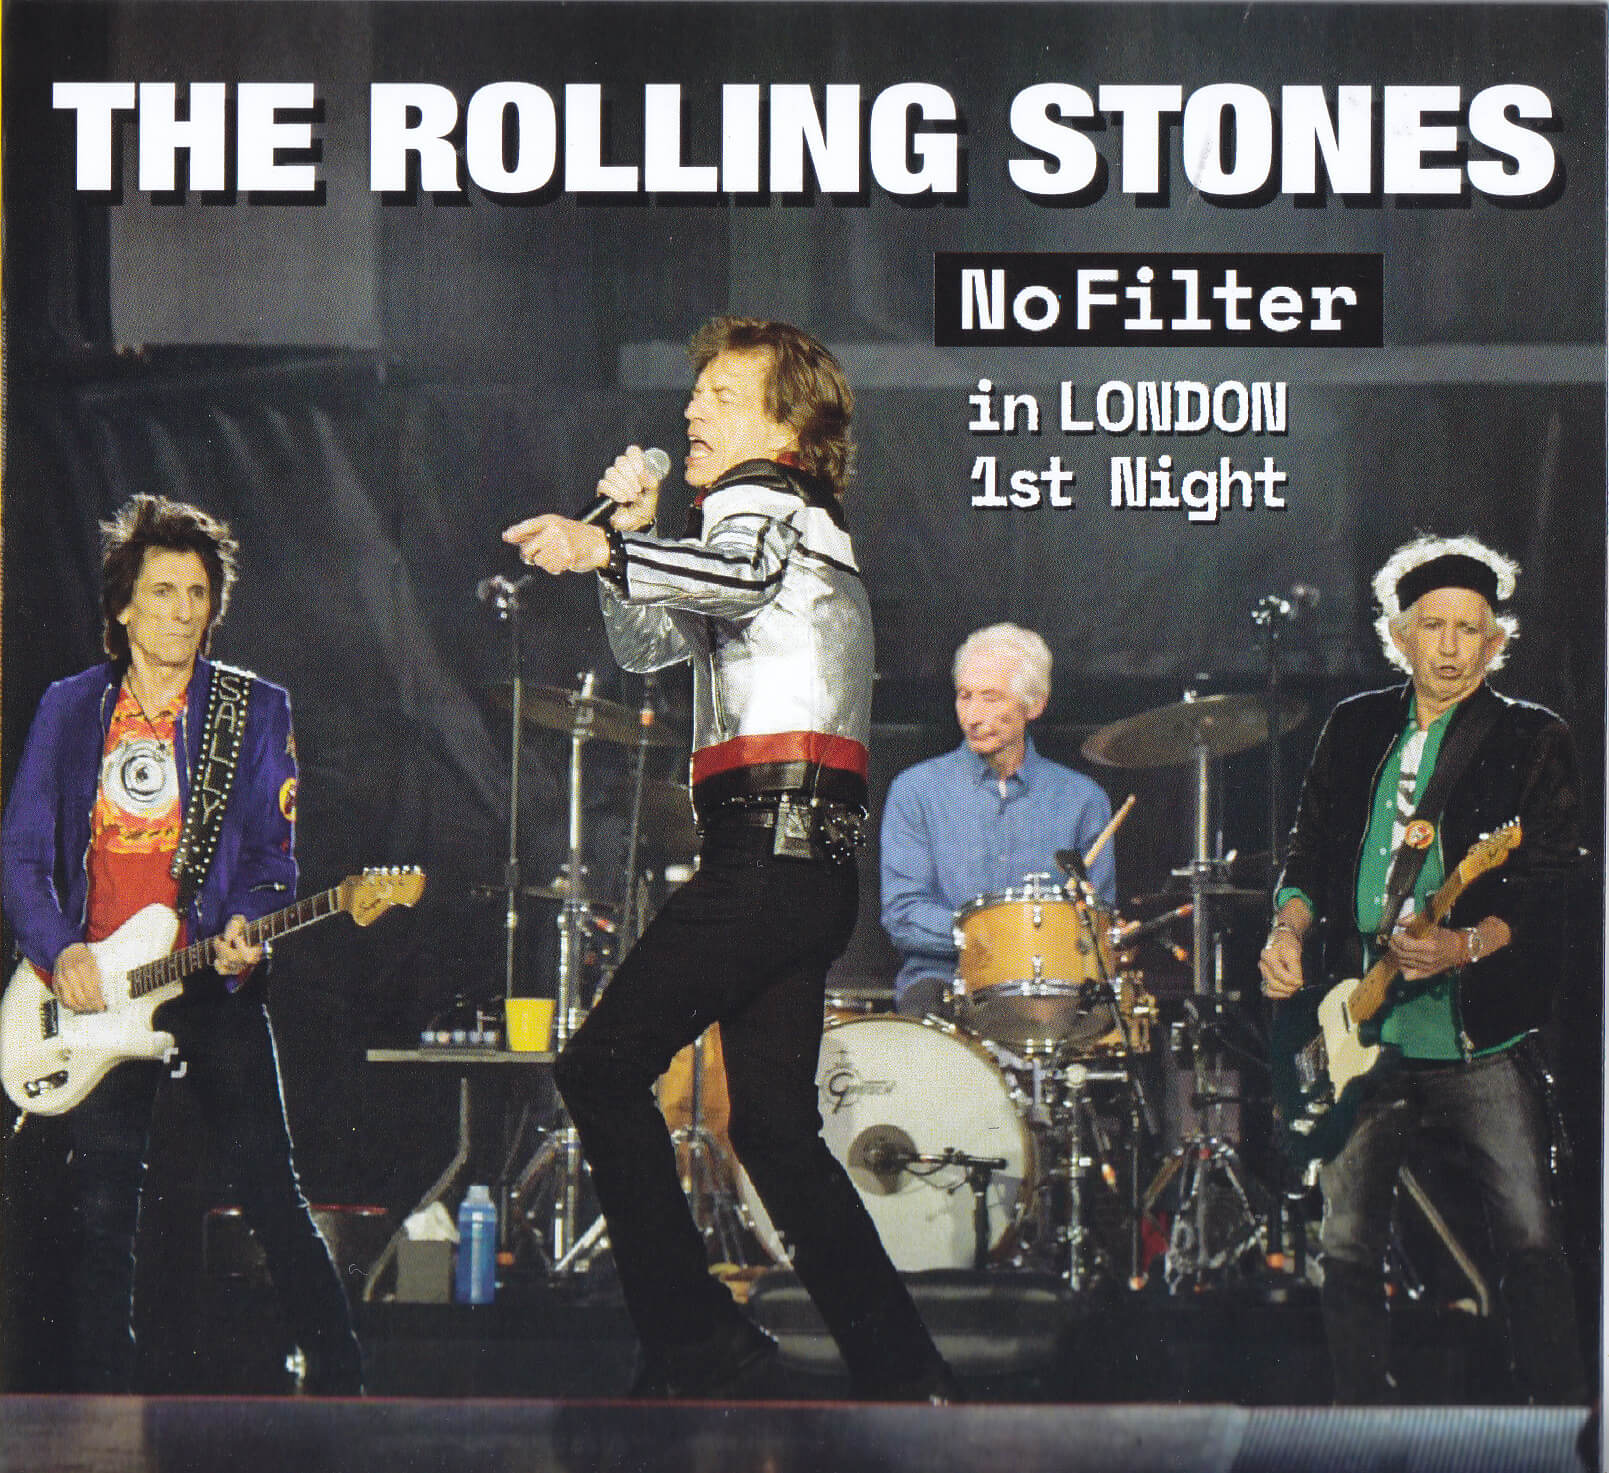 Rolling Stones / No Filter In London 1st Night 2018 / 2CD